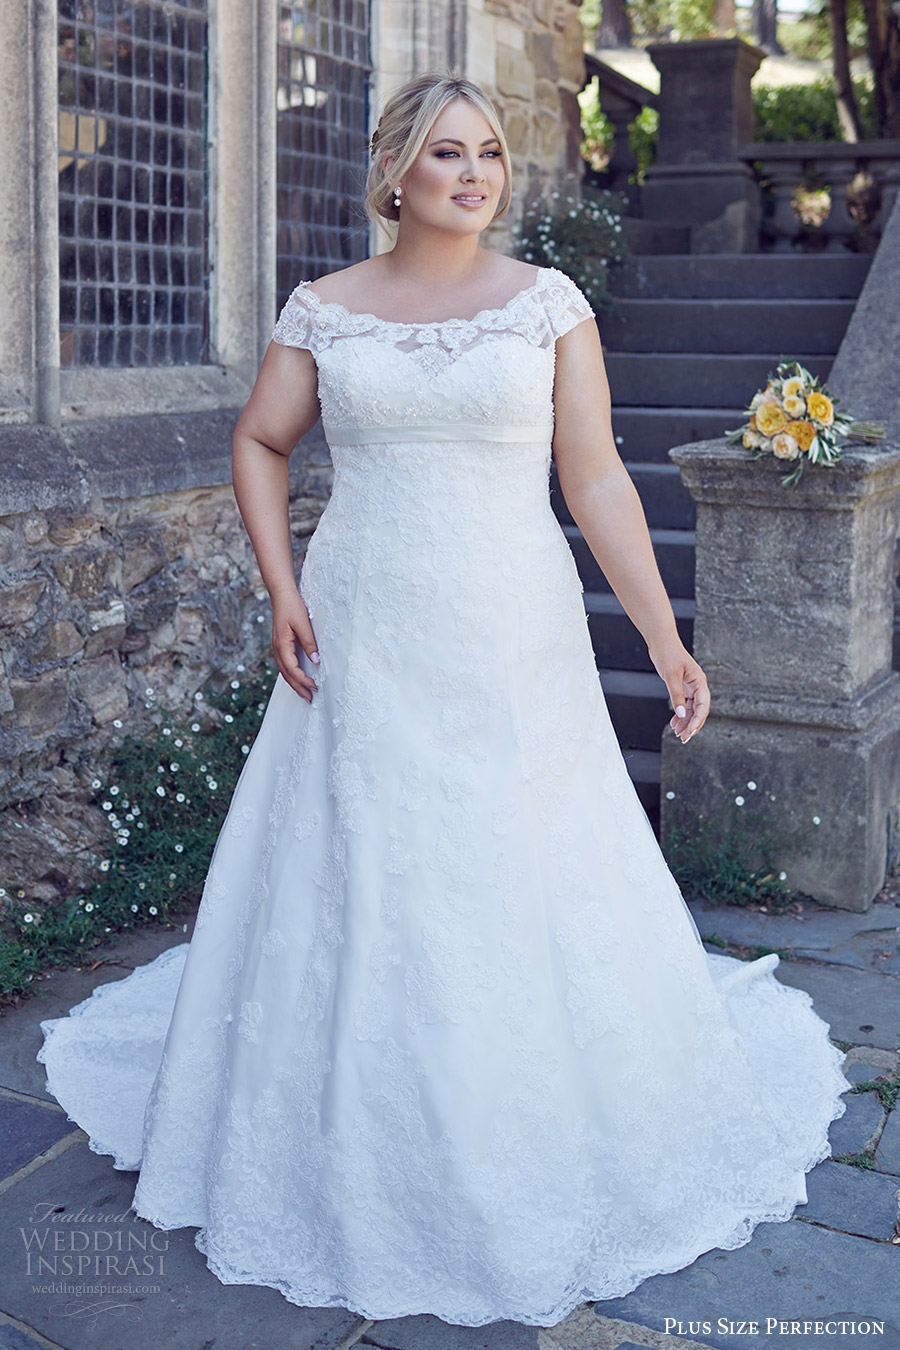 Plus Size Perfection Bridal 2016 Cap Sleeve Off Shoulder Trumpet Lace Wedding Dress Bridget